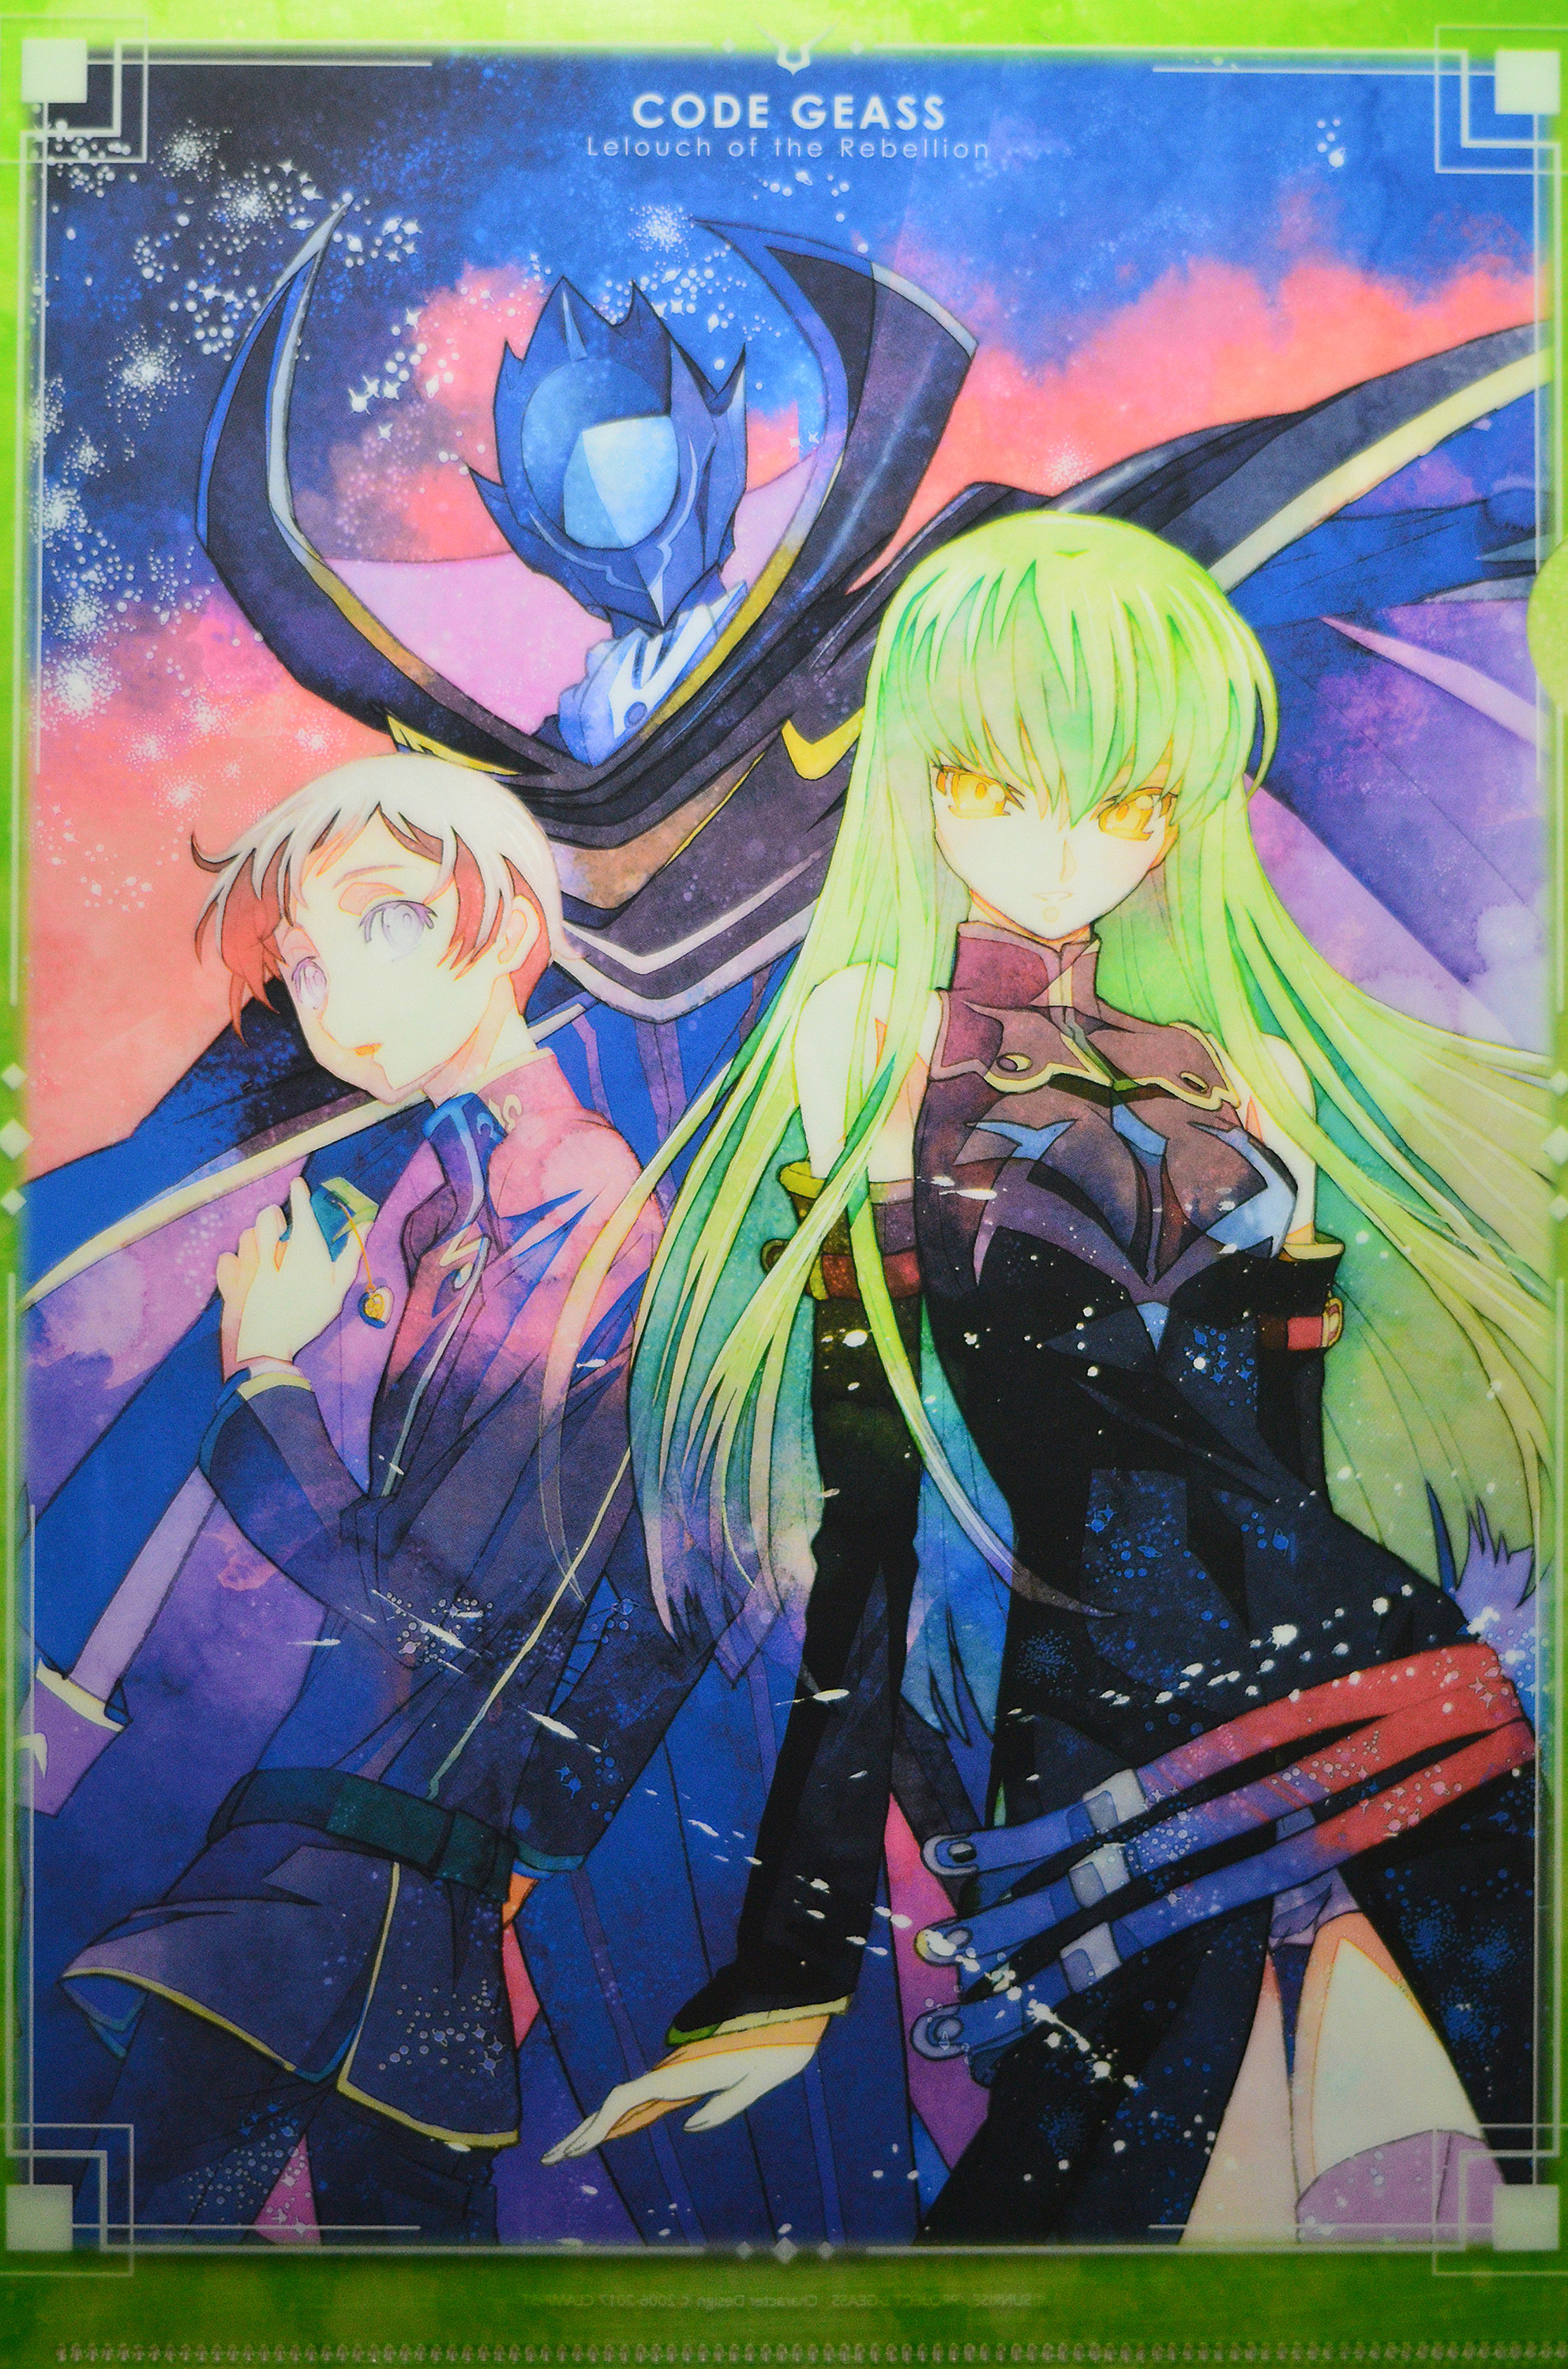 All Hail Britannia - The Code Geass Fanlisting - Code Geass